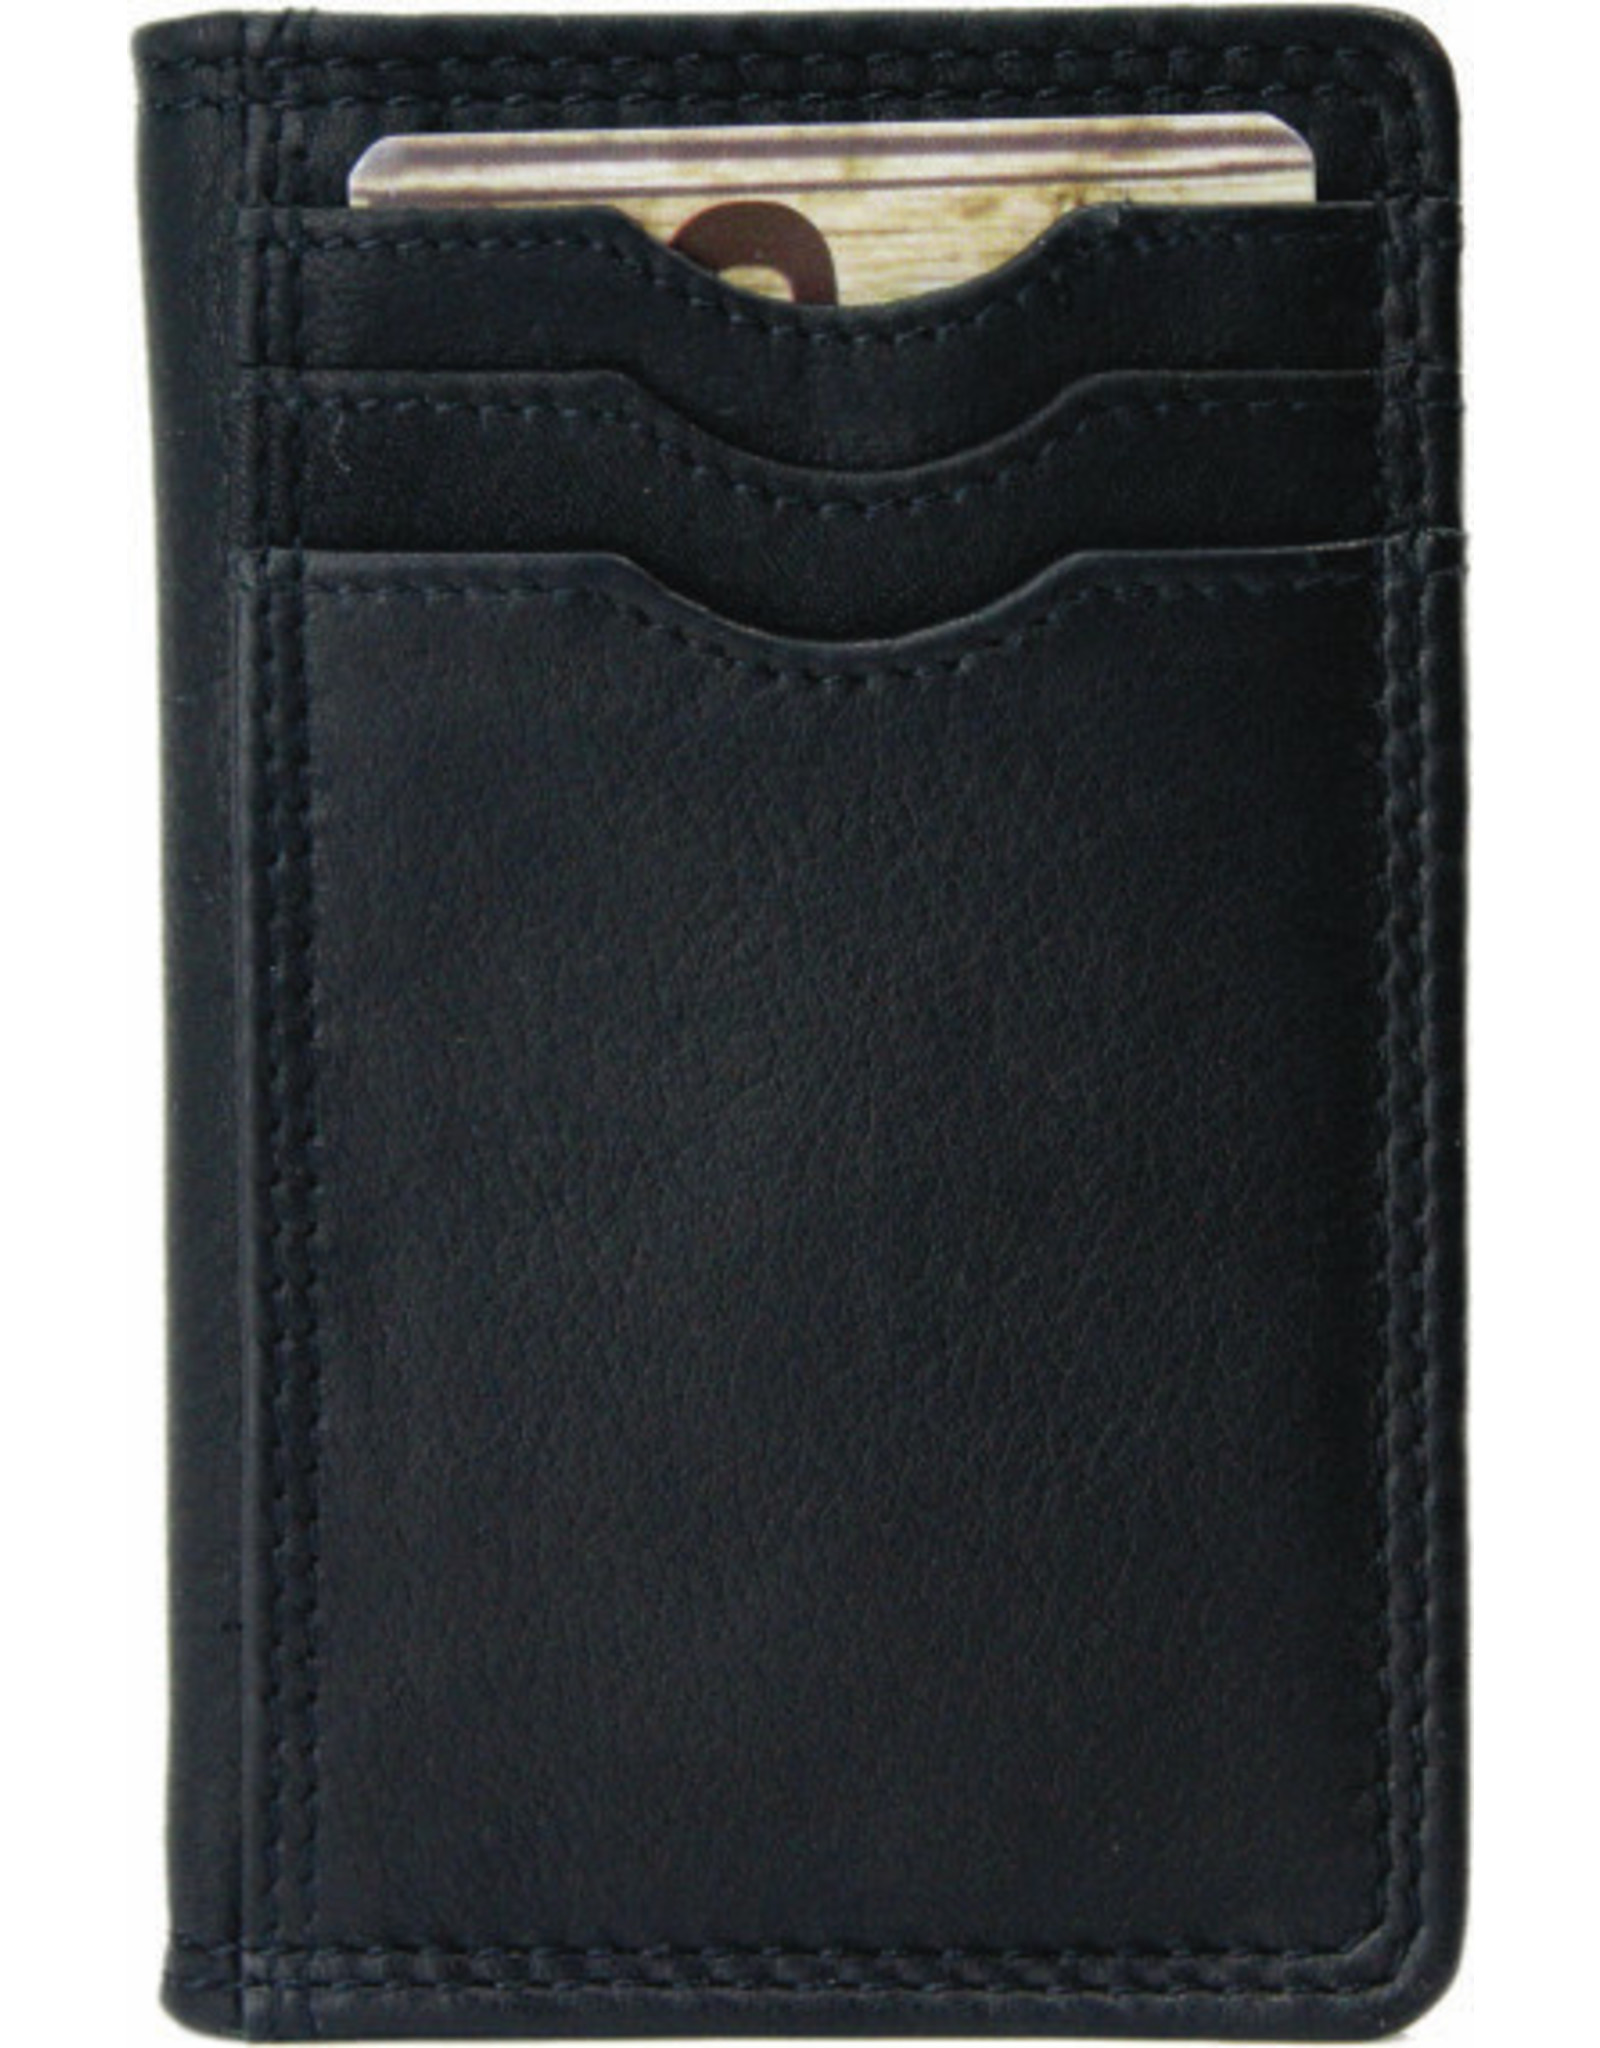 "Rugged Earth Rugged Earth Wallet  880019 Black W 3""*H4.25""*D 3/8"""